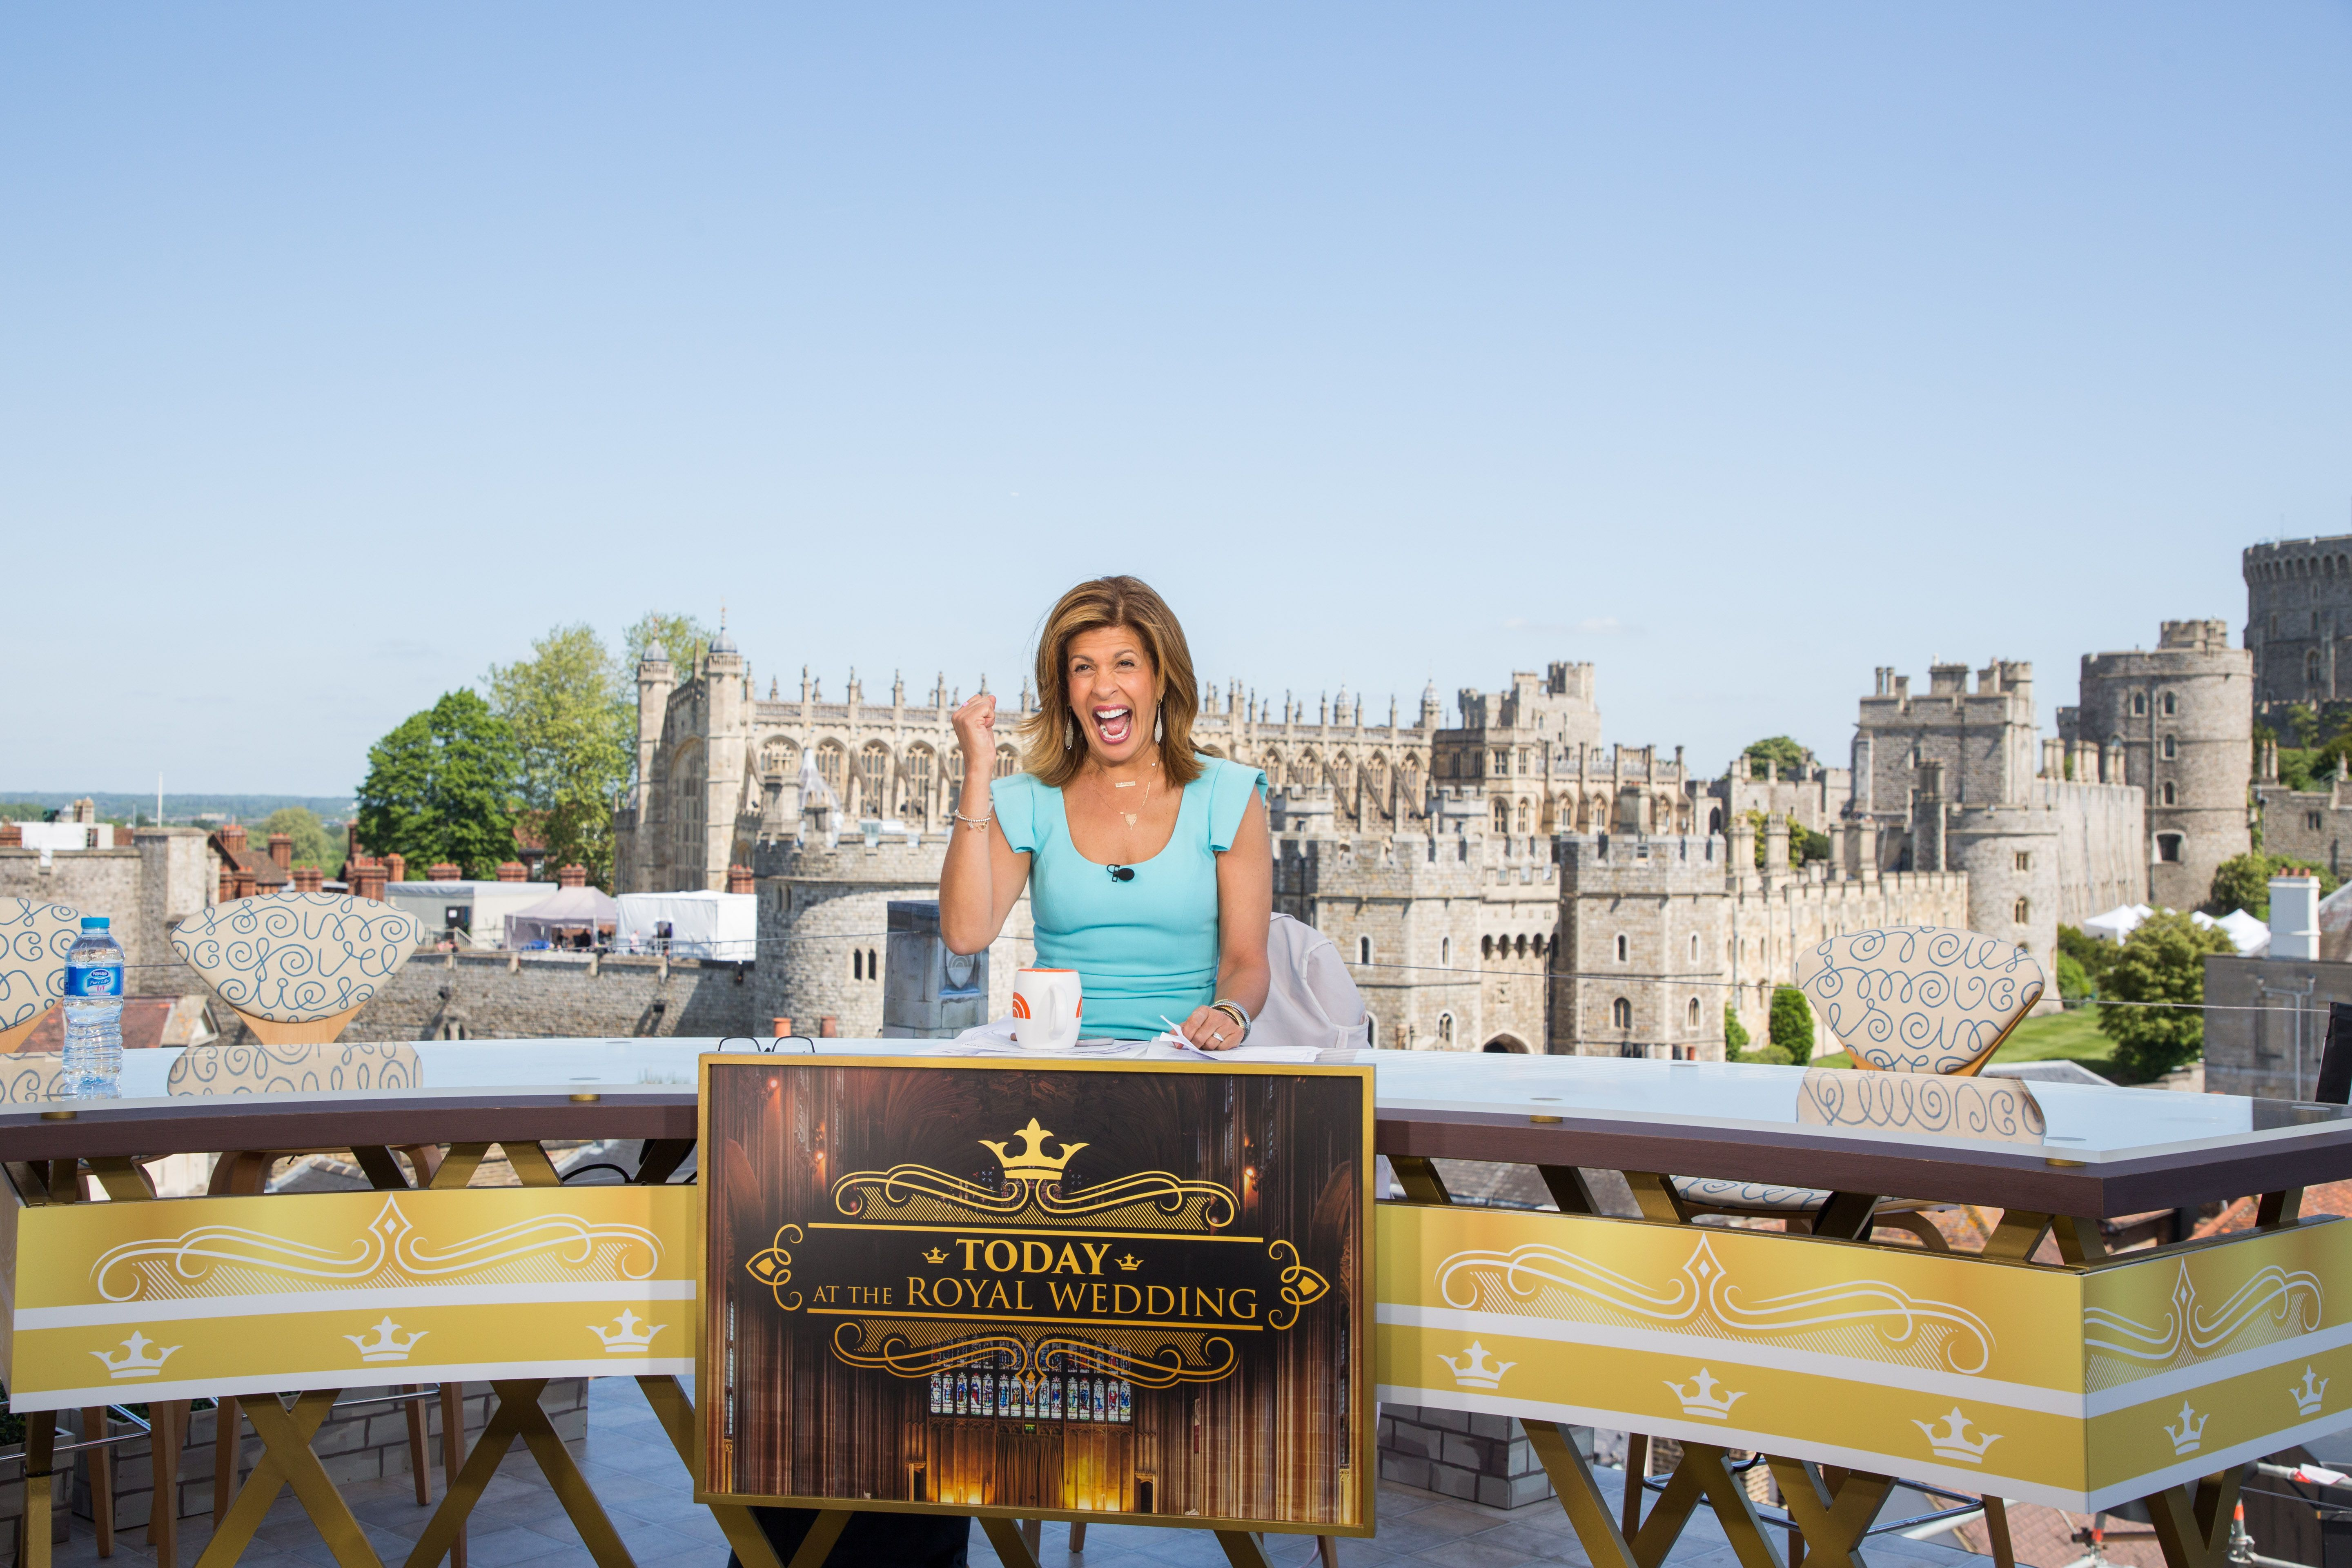 Hoda Kotb And Savannah Guthrie Share What It S Really Like In Windsor The Day Before Royal Wedding